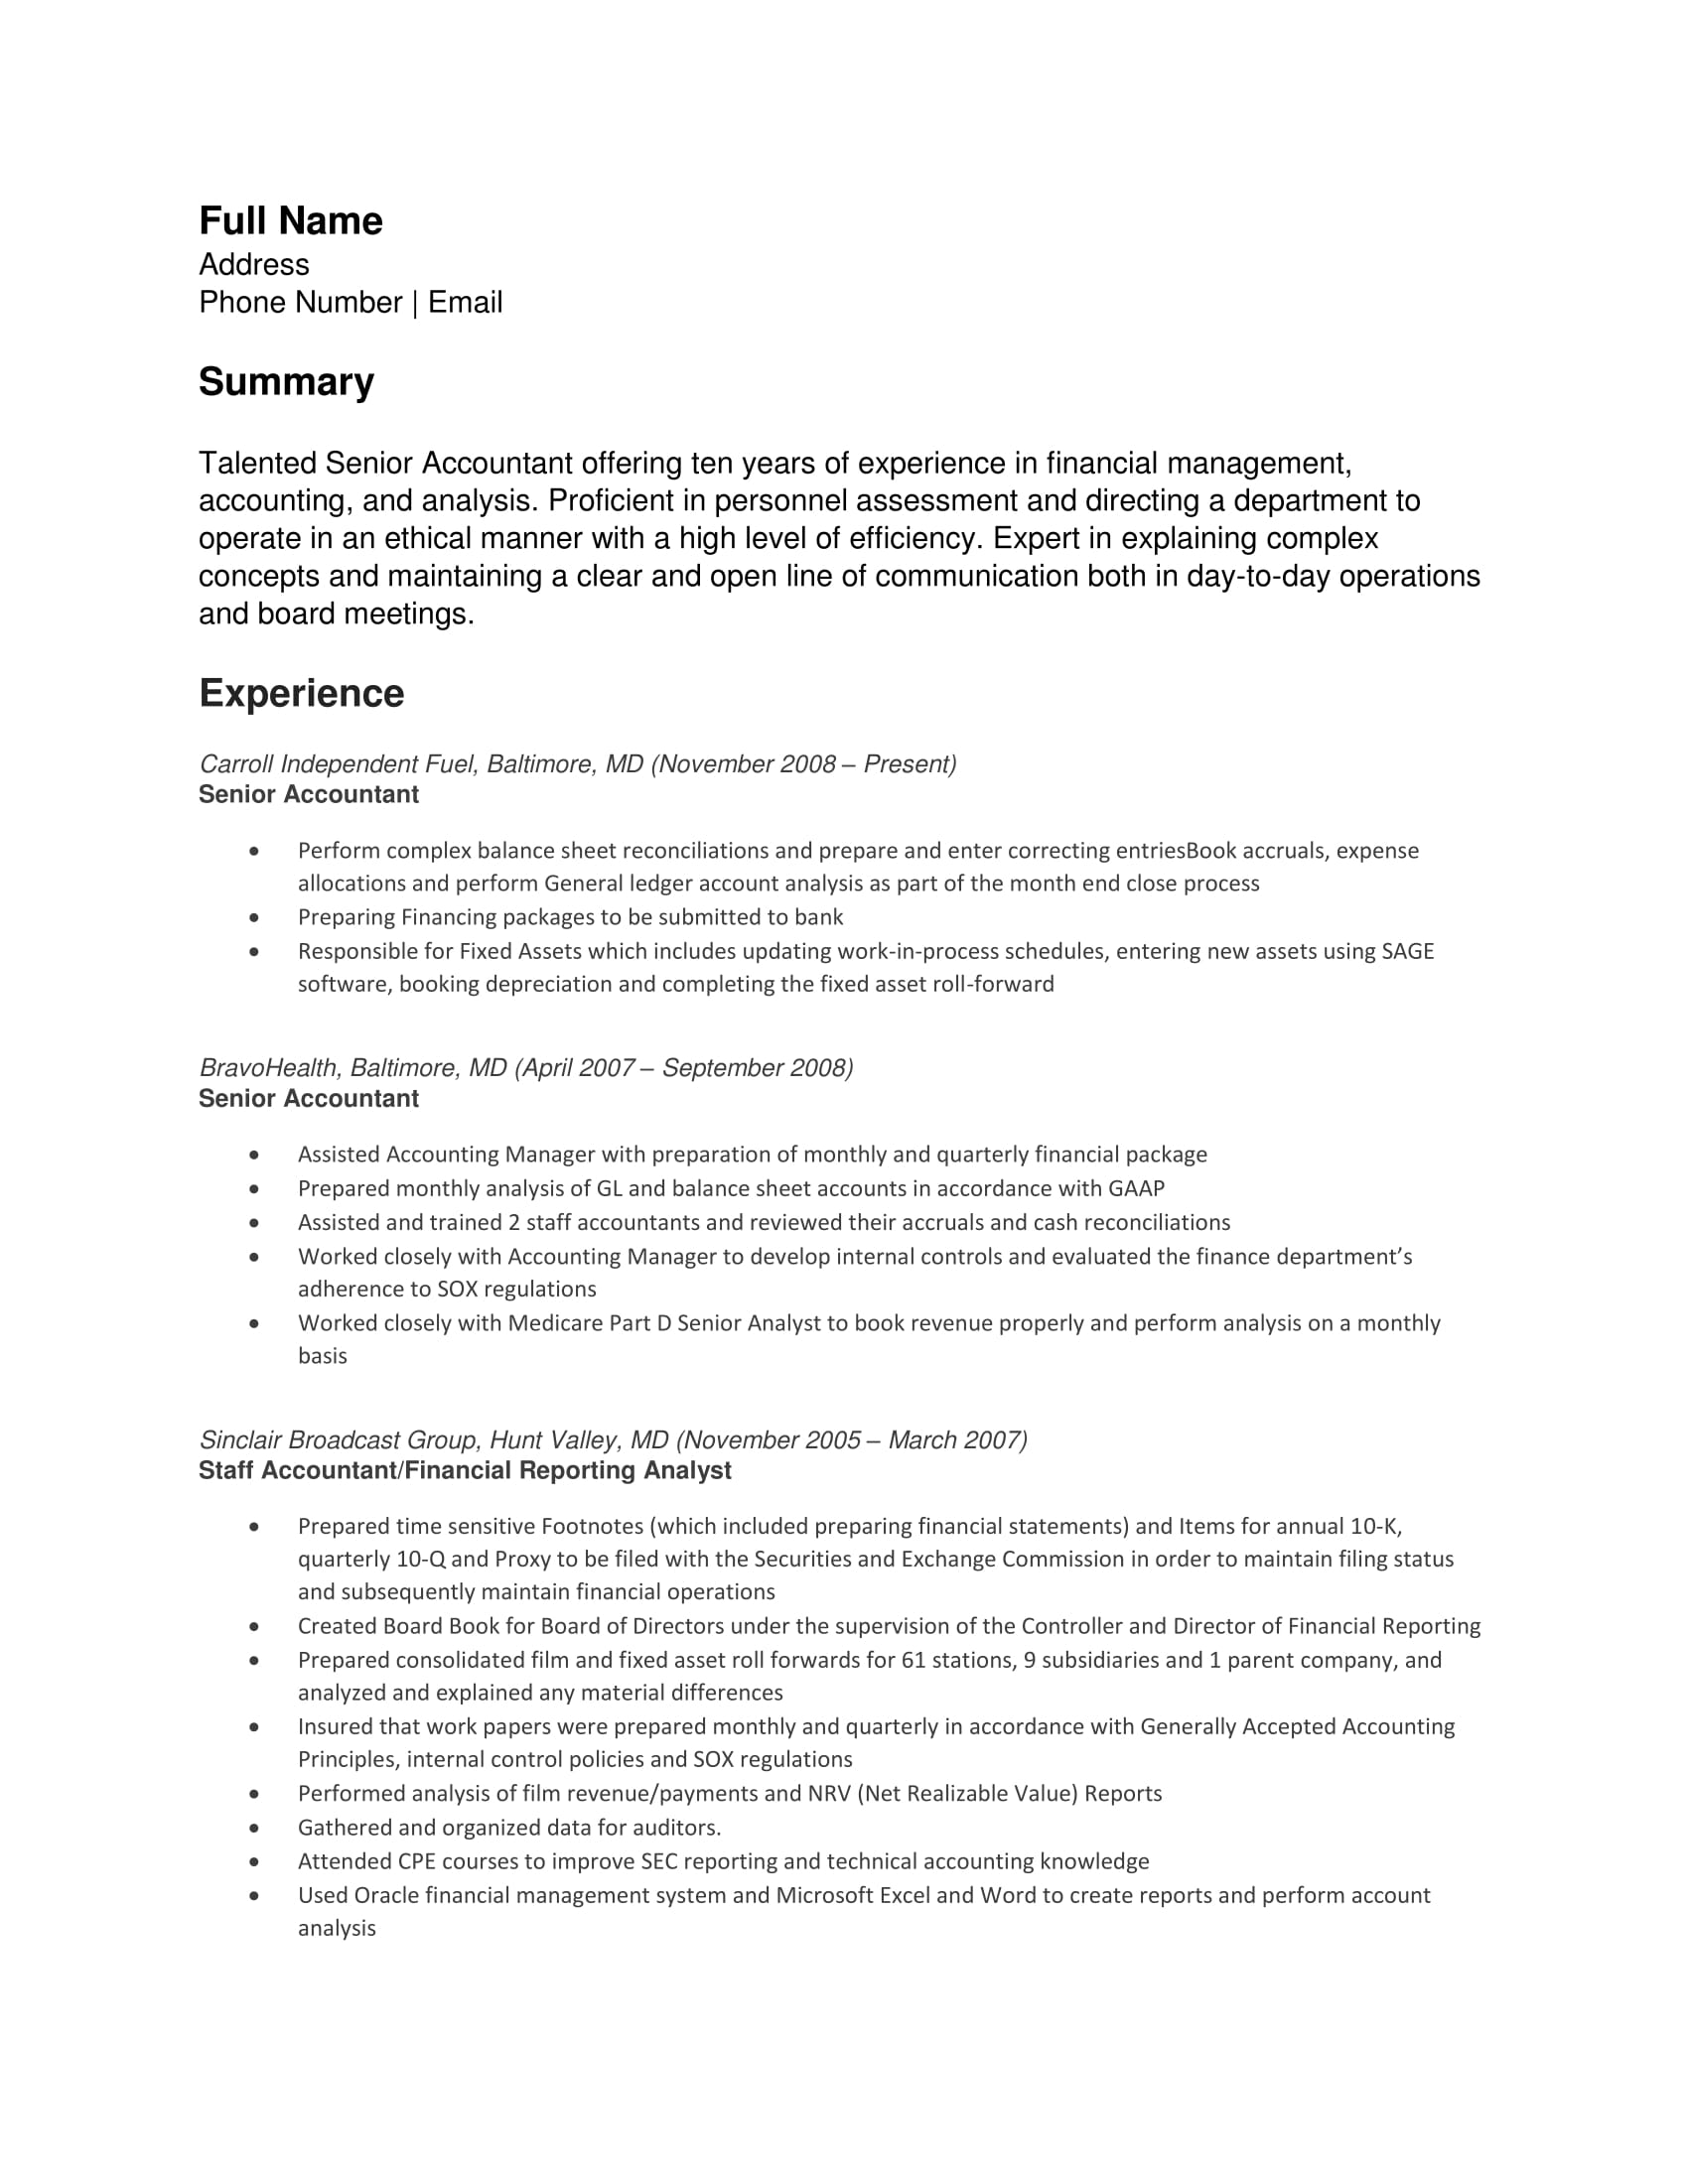 Senior Accountant Resume 24 Best Finance Resume Sample Templates